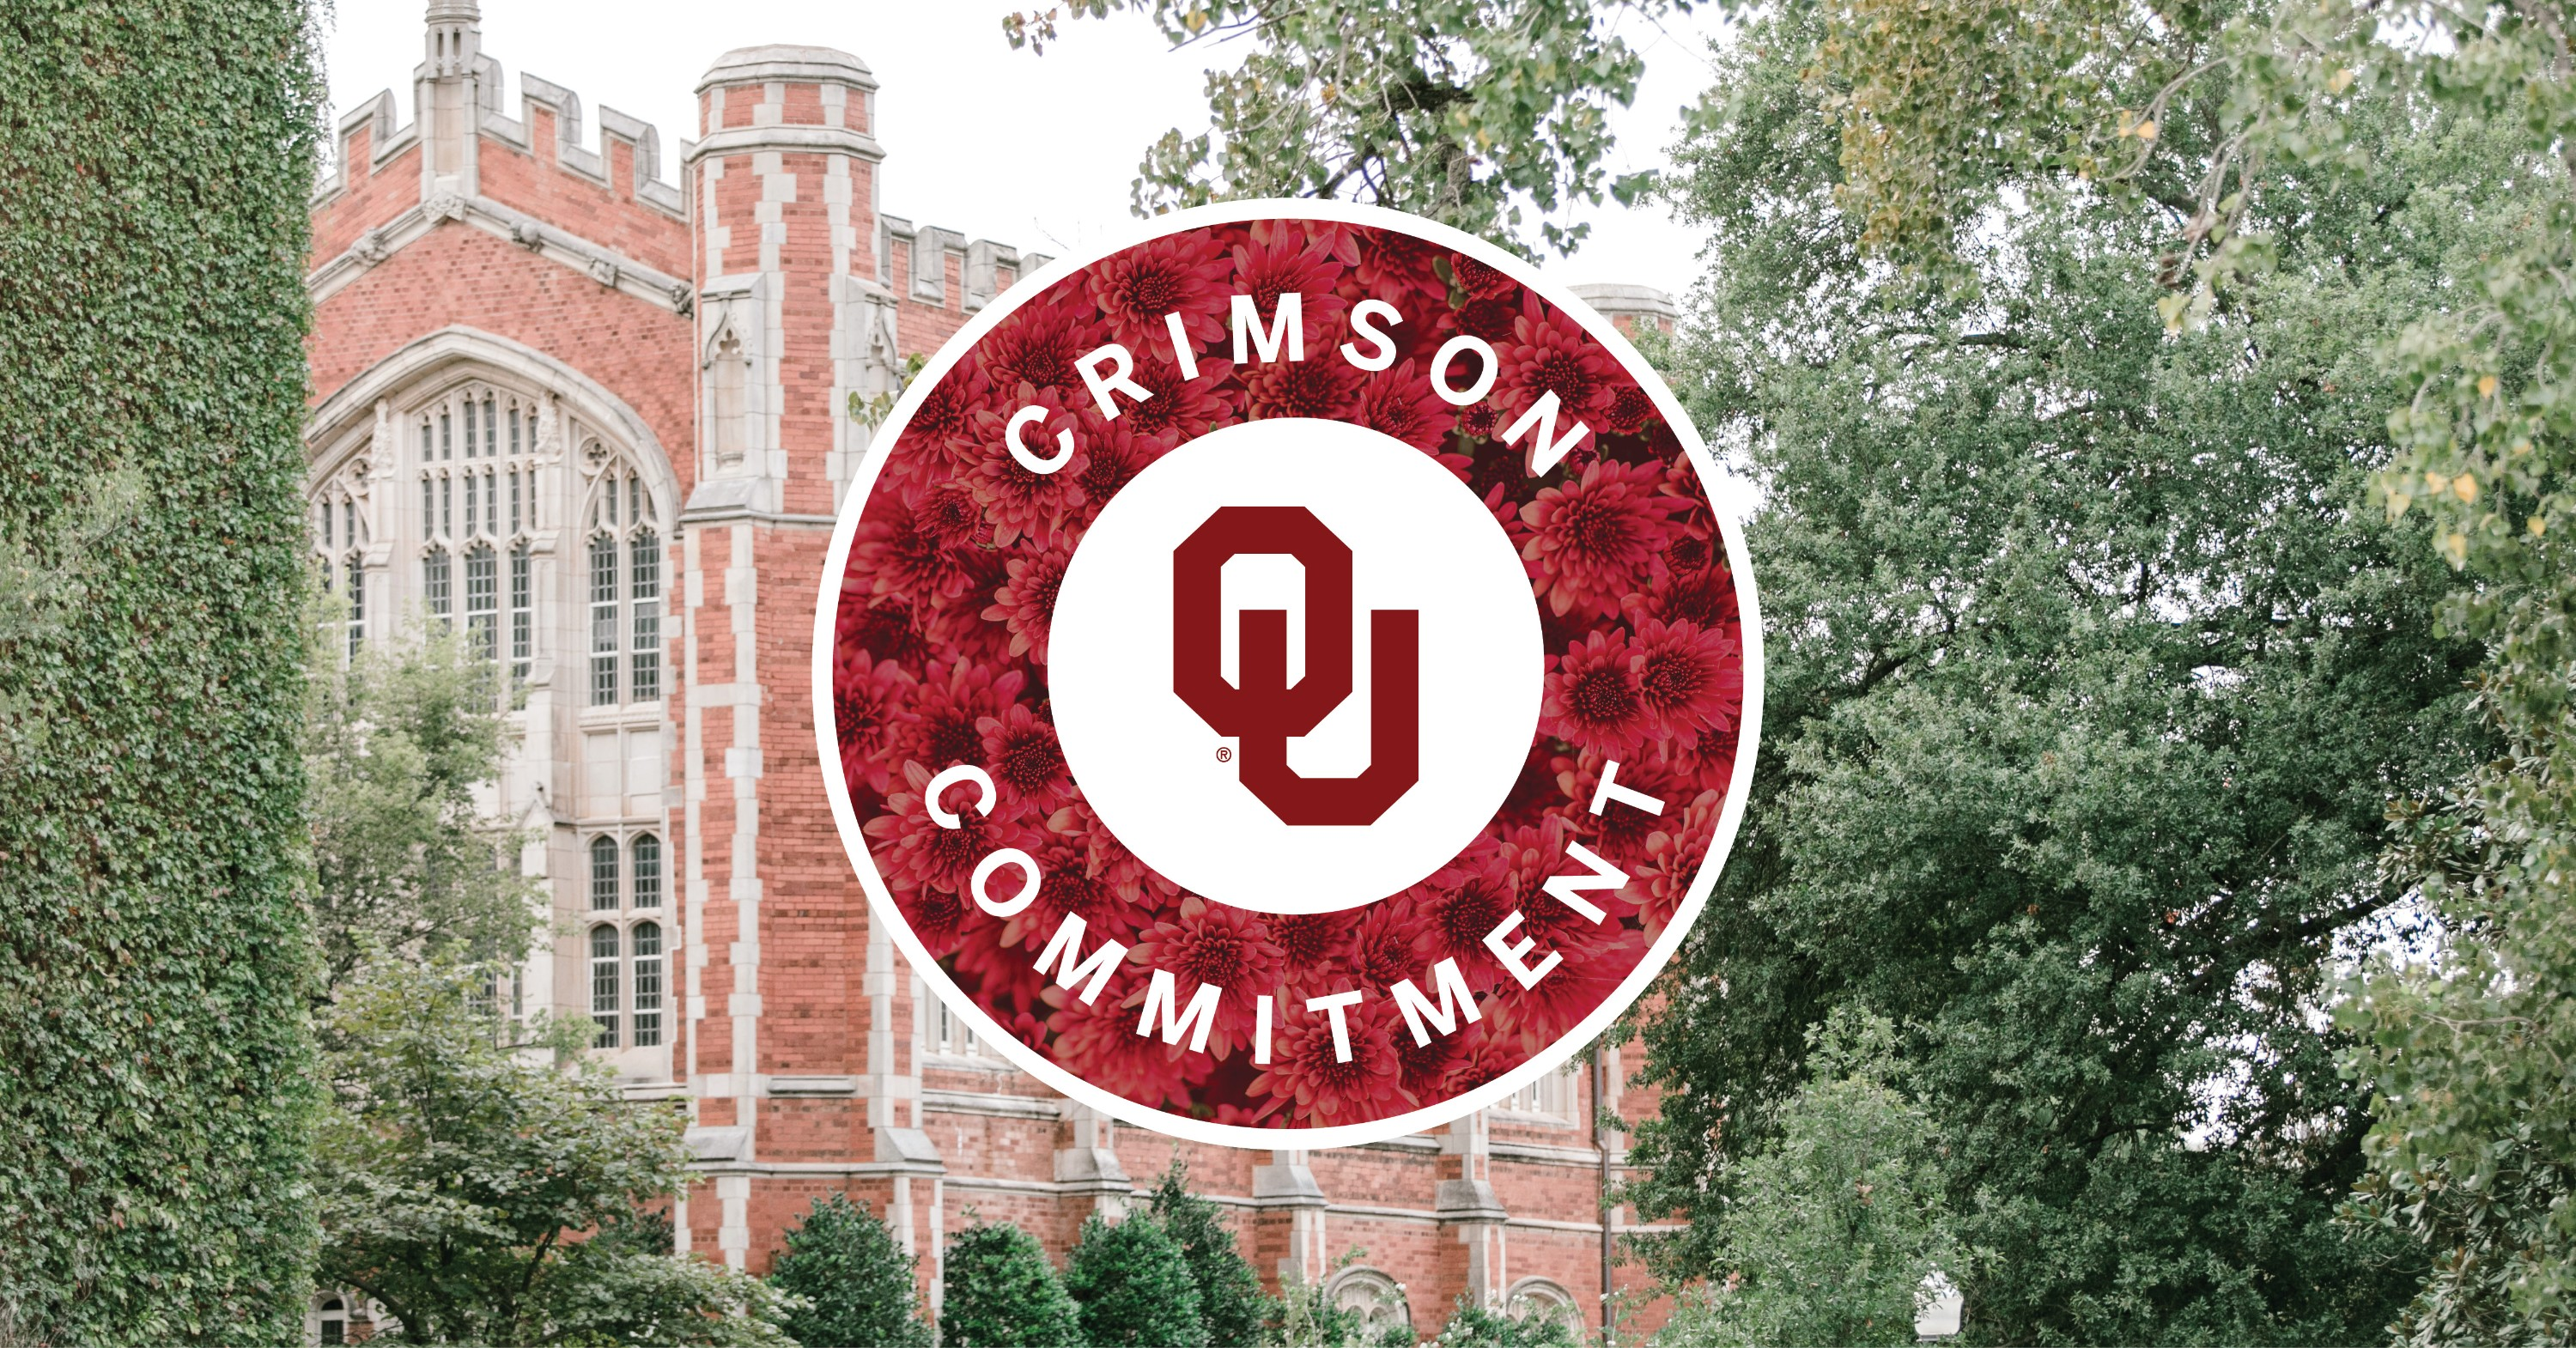 Crimson Commitment